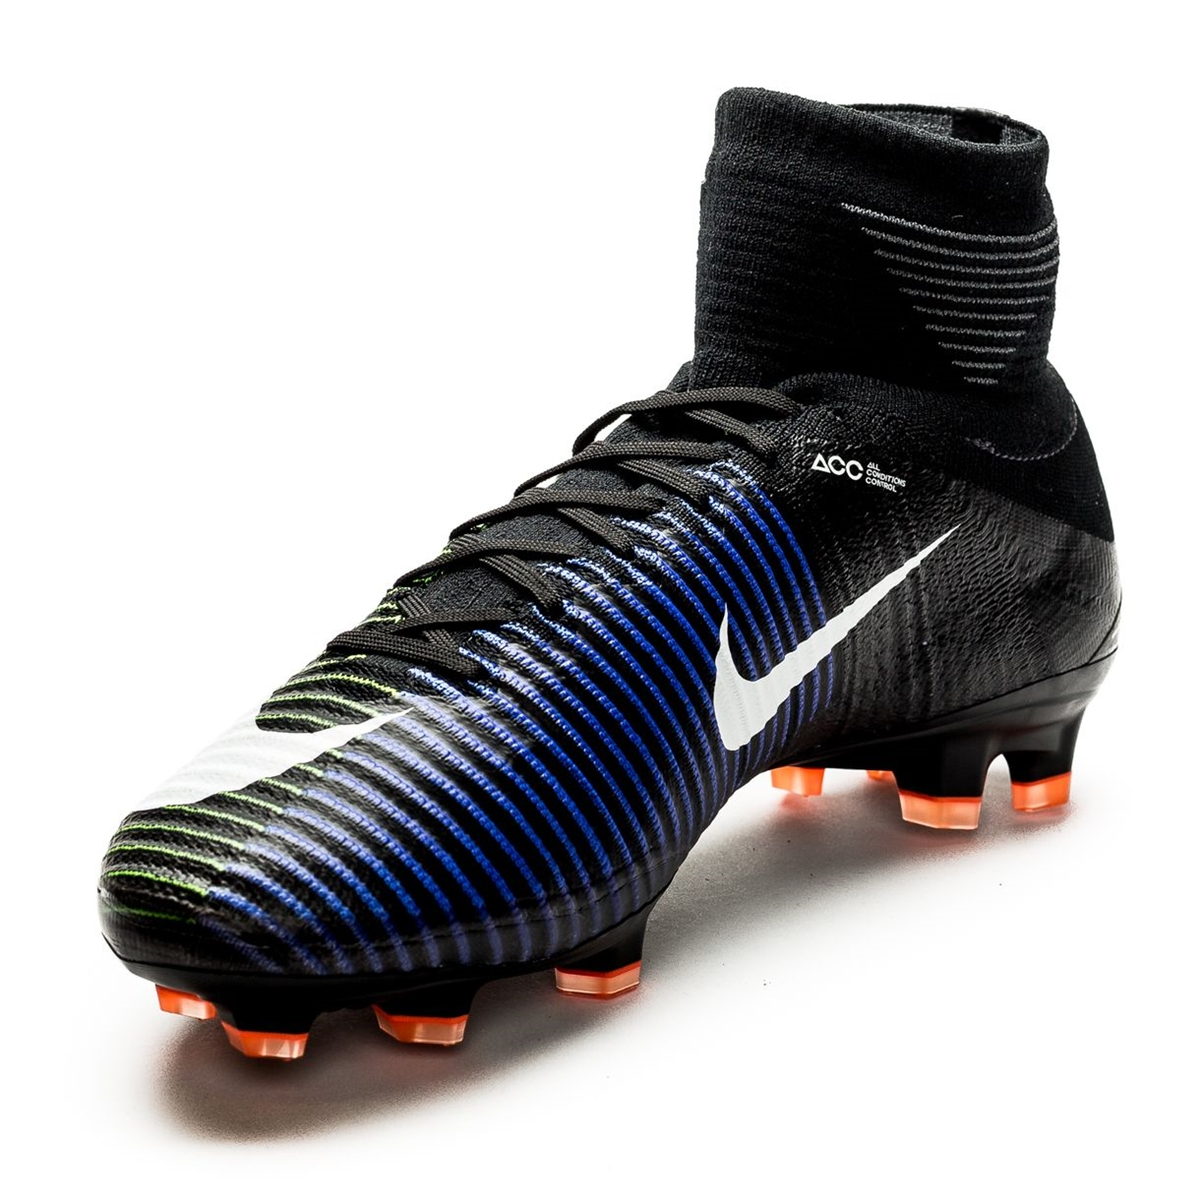 40fabc09b Nike Mercurial SuperFly V FG Soccer Cleats (Black White Electric ...